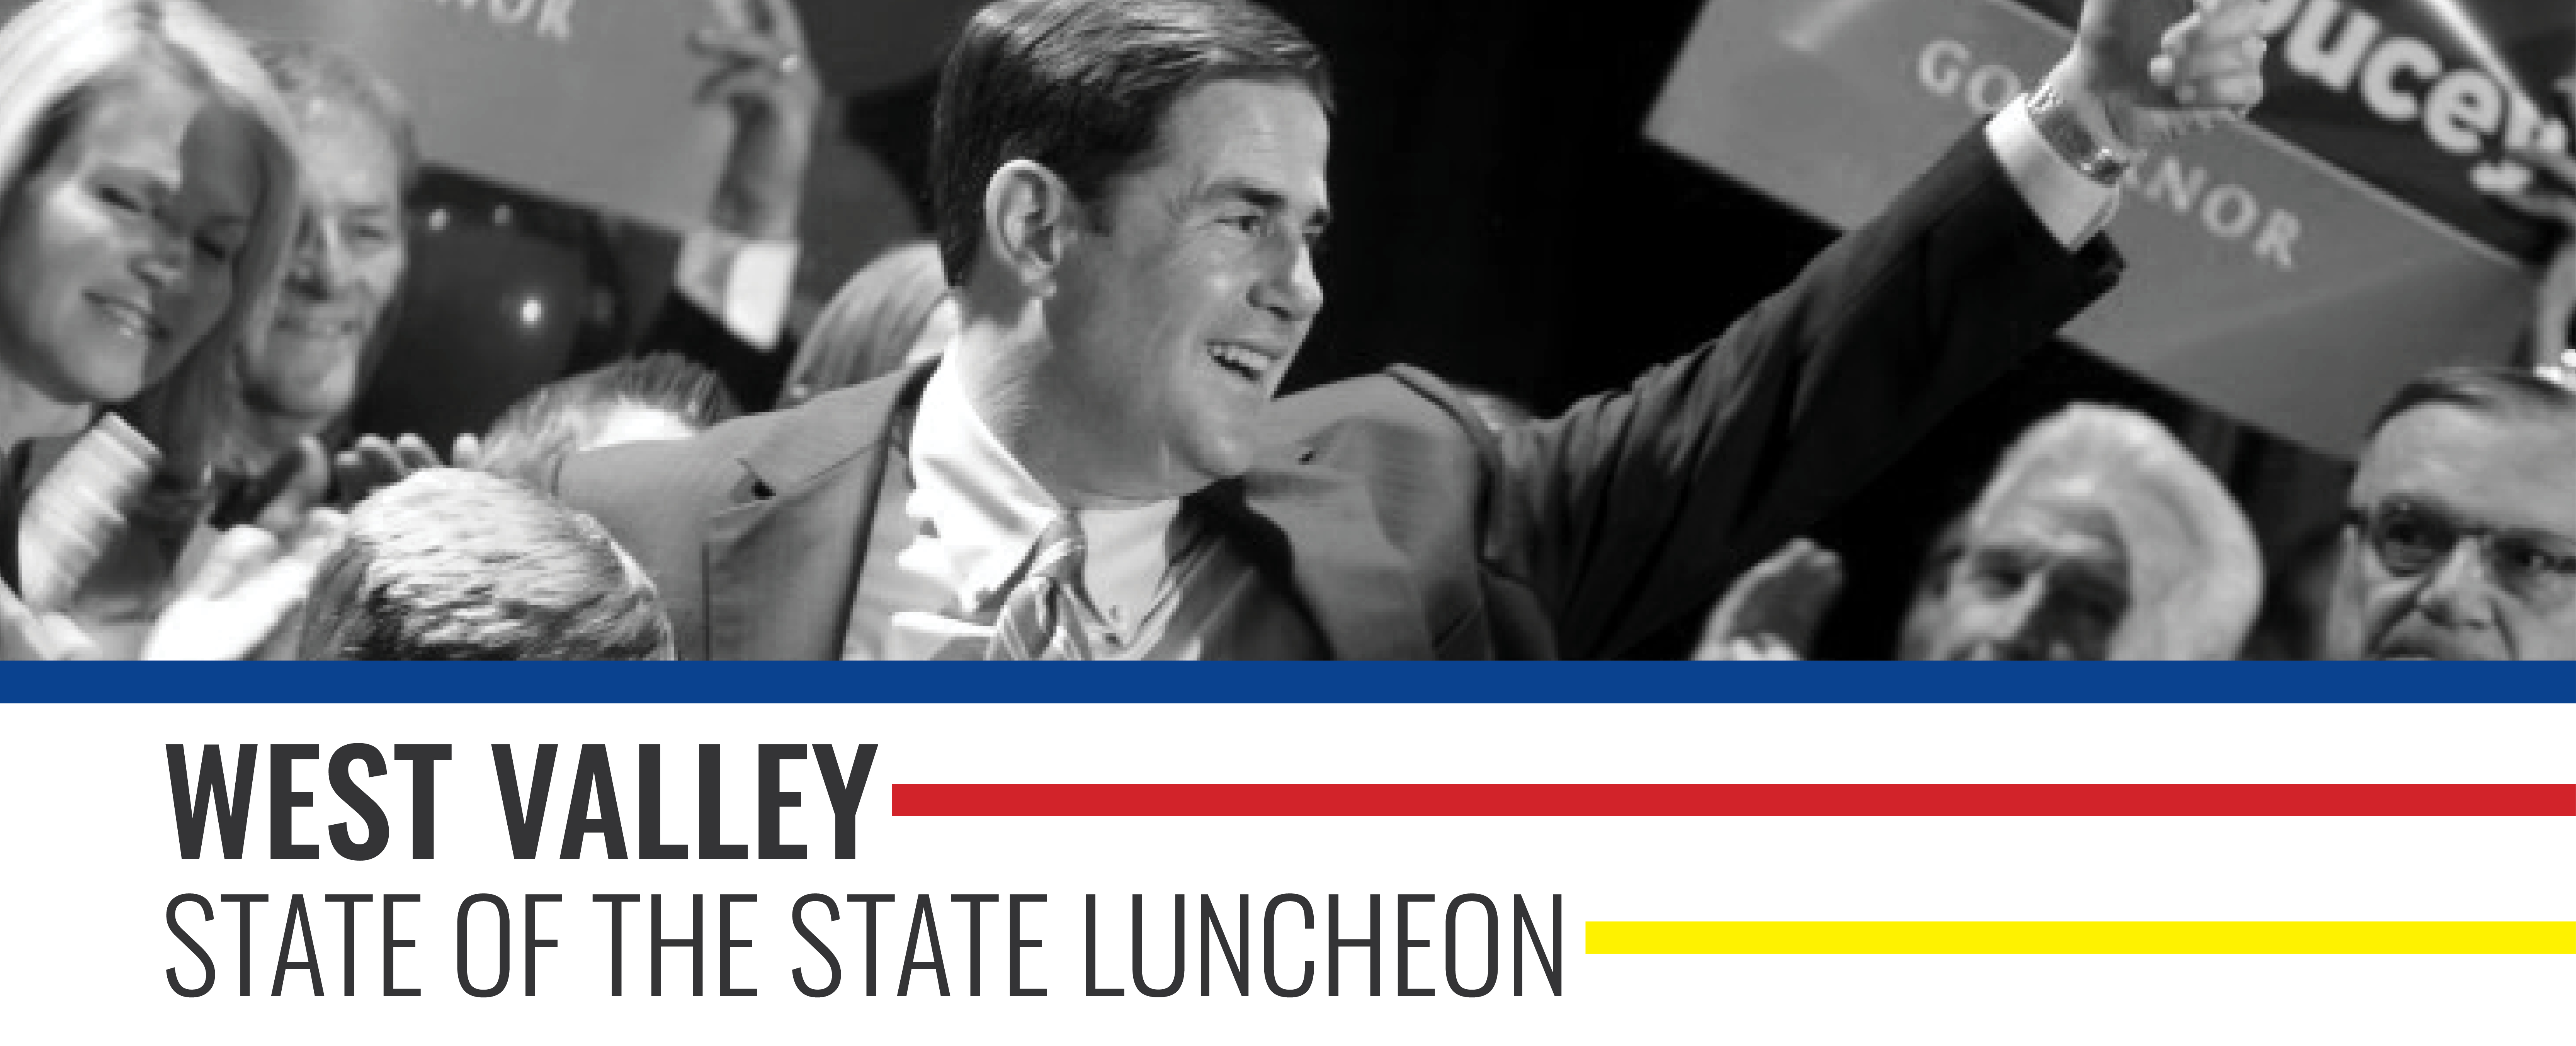 West Valley State of the State Luncheon - Header